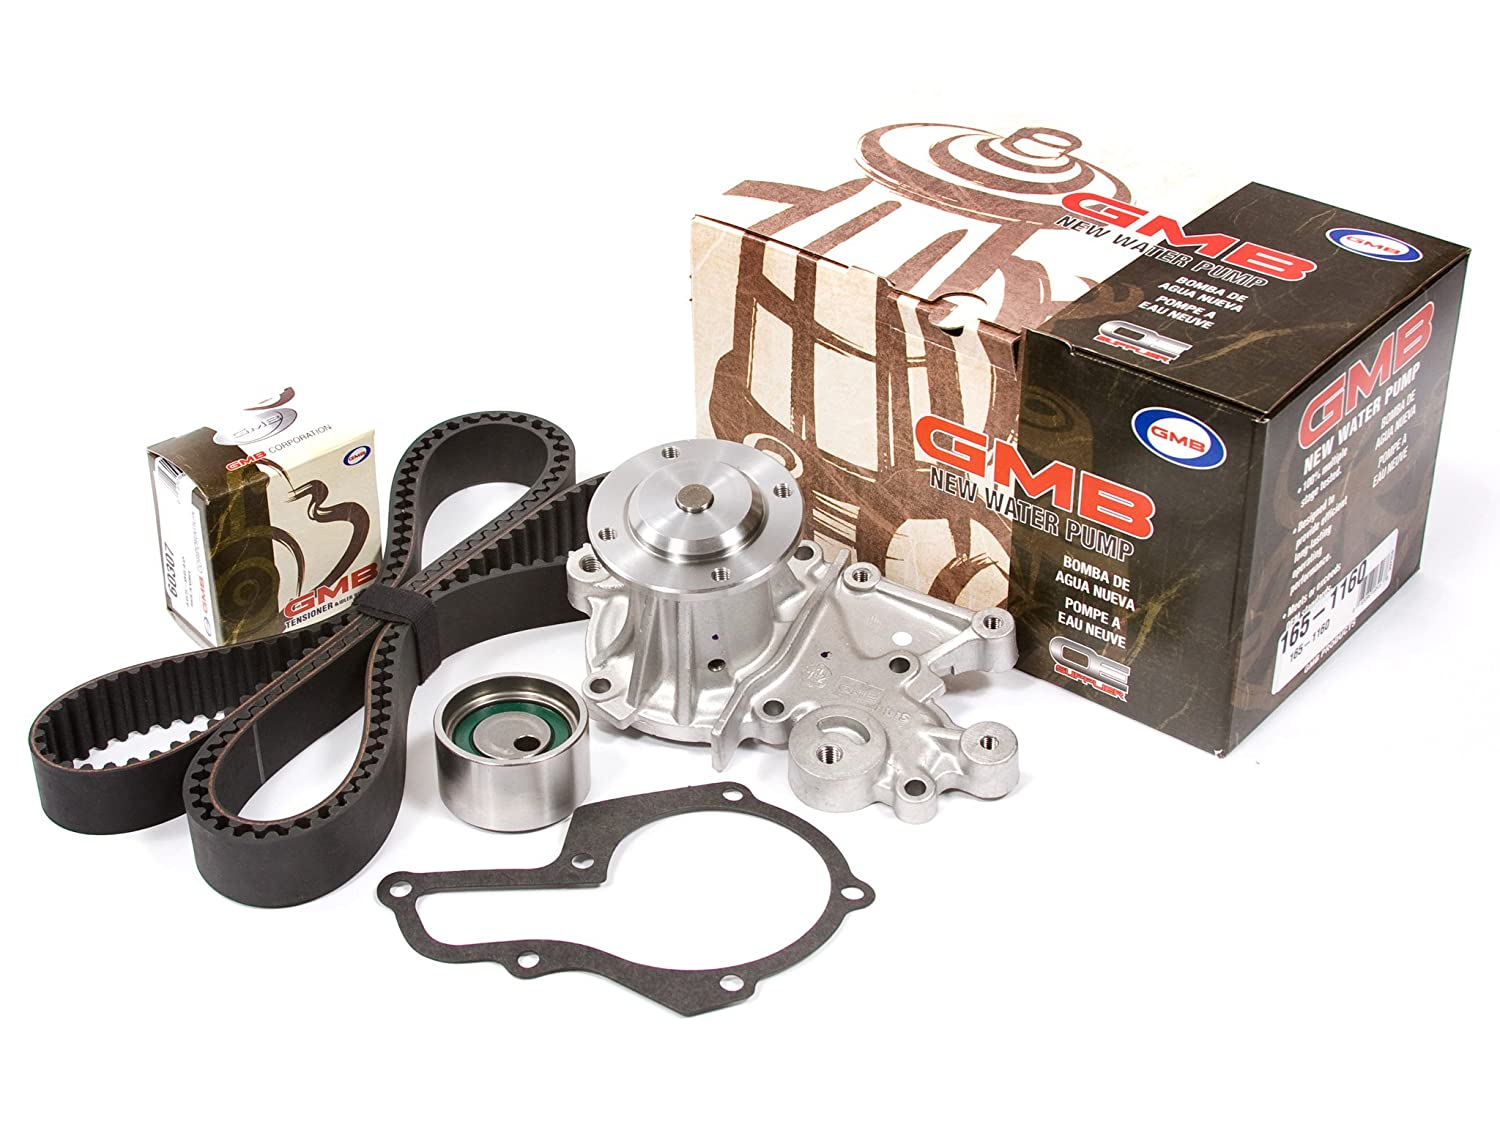 Amazon.com: Evergreen TBK194AWP Fits 98-01 Chevrolet Metro Suzuki Swift 1.3L SOHC 16V Timing Belt Kit GMB Water Pump: Automotive